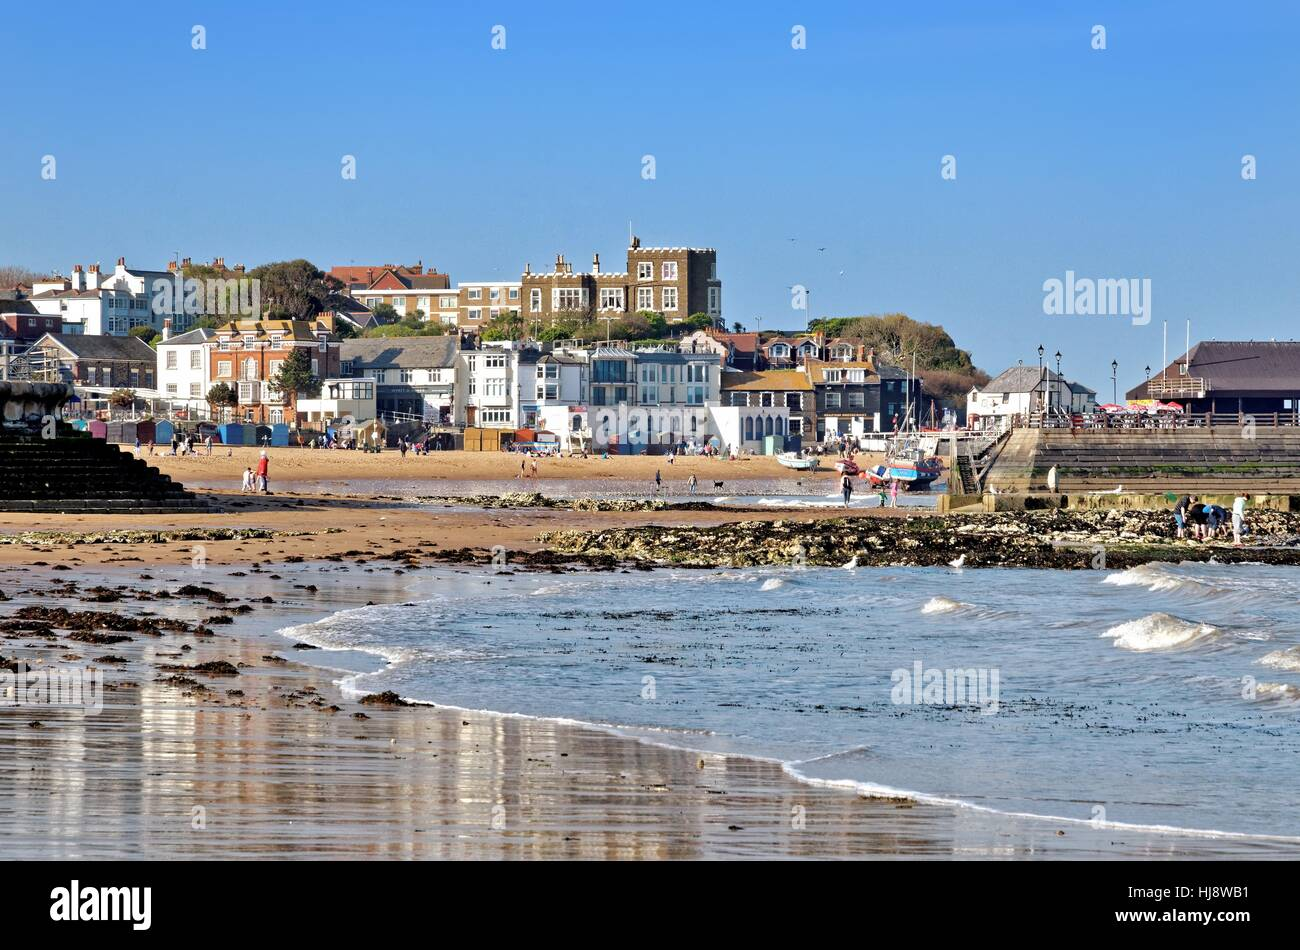 Beach and seafront at Broadstairs Kent UK - Stock Image